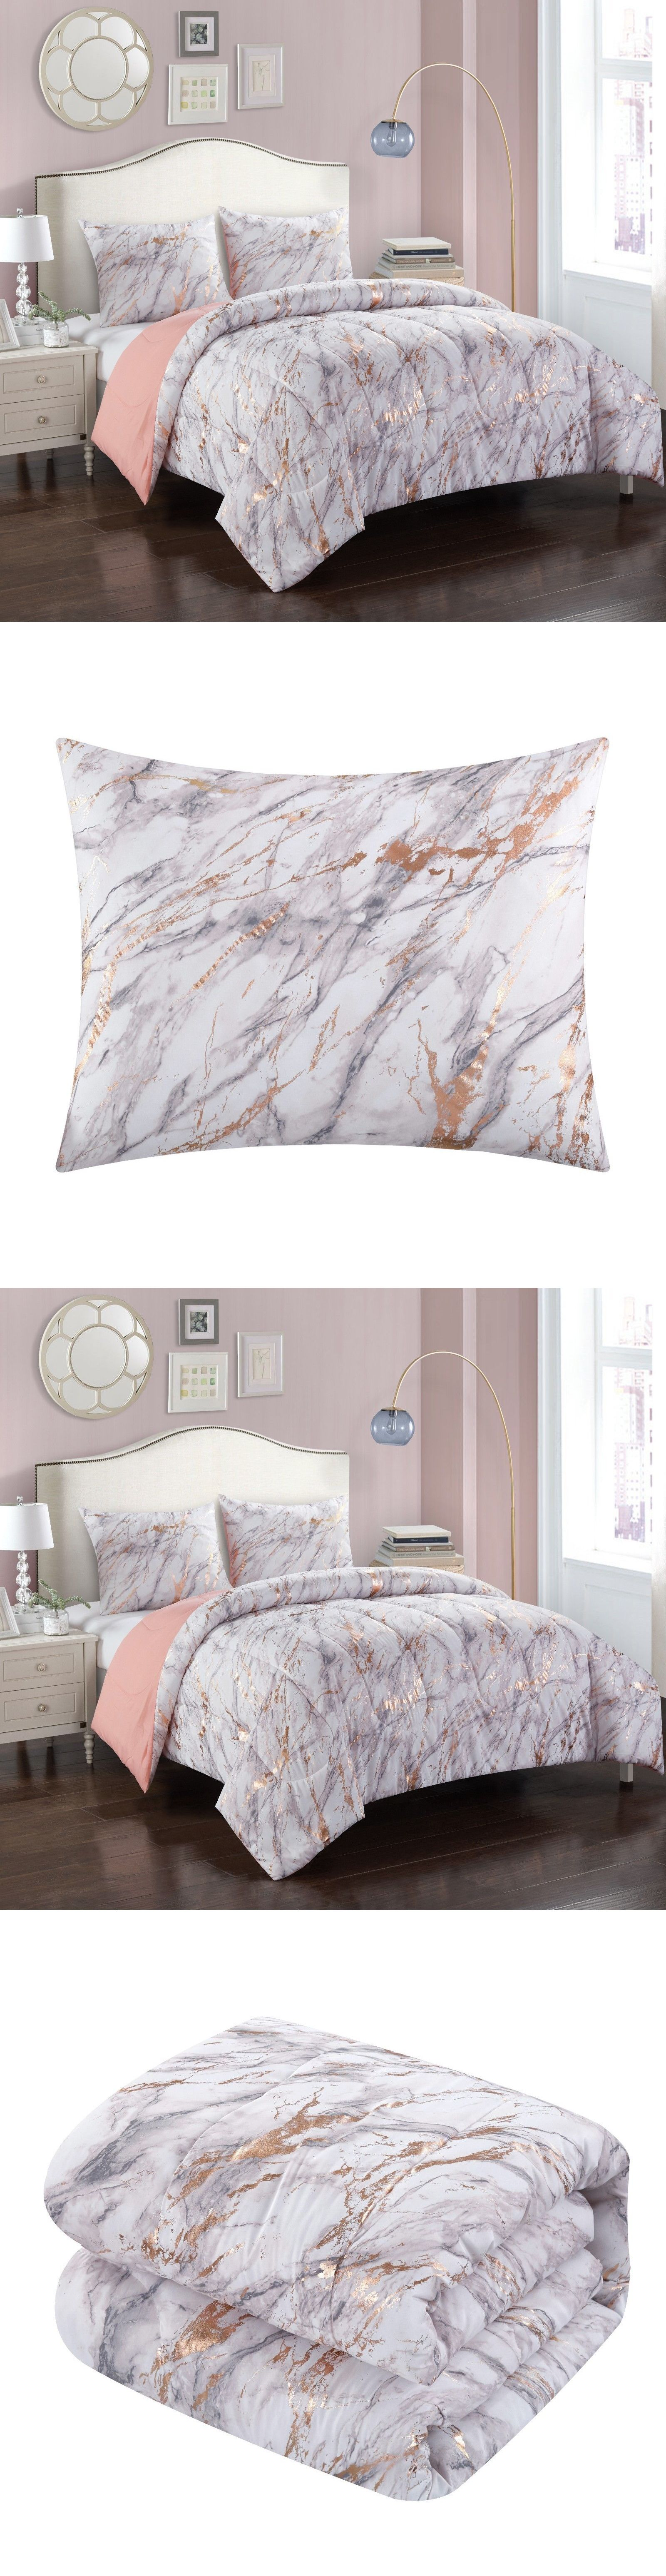 Comforters And Sets 66728 Rose Gold Metallic Marble Comforter Set Twin Twin Xl Full Queen Washable Buy It Now Rose Gold Bed Marble Comforter Comforter Sets